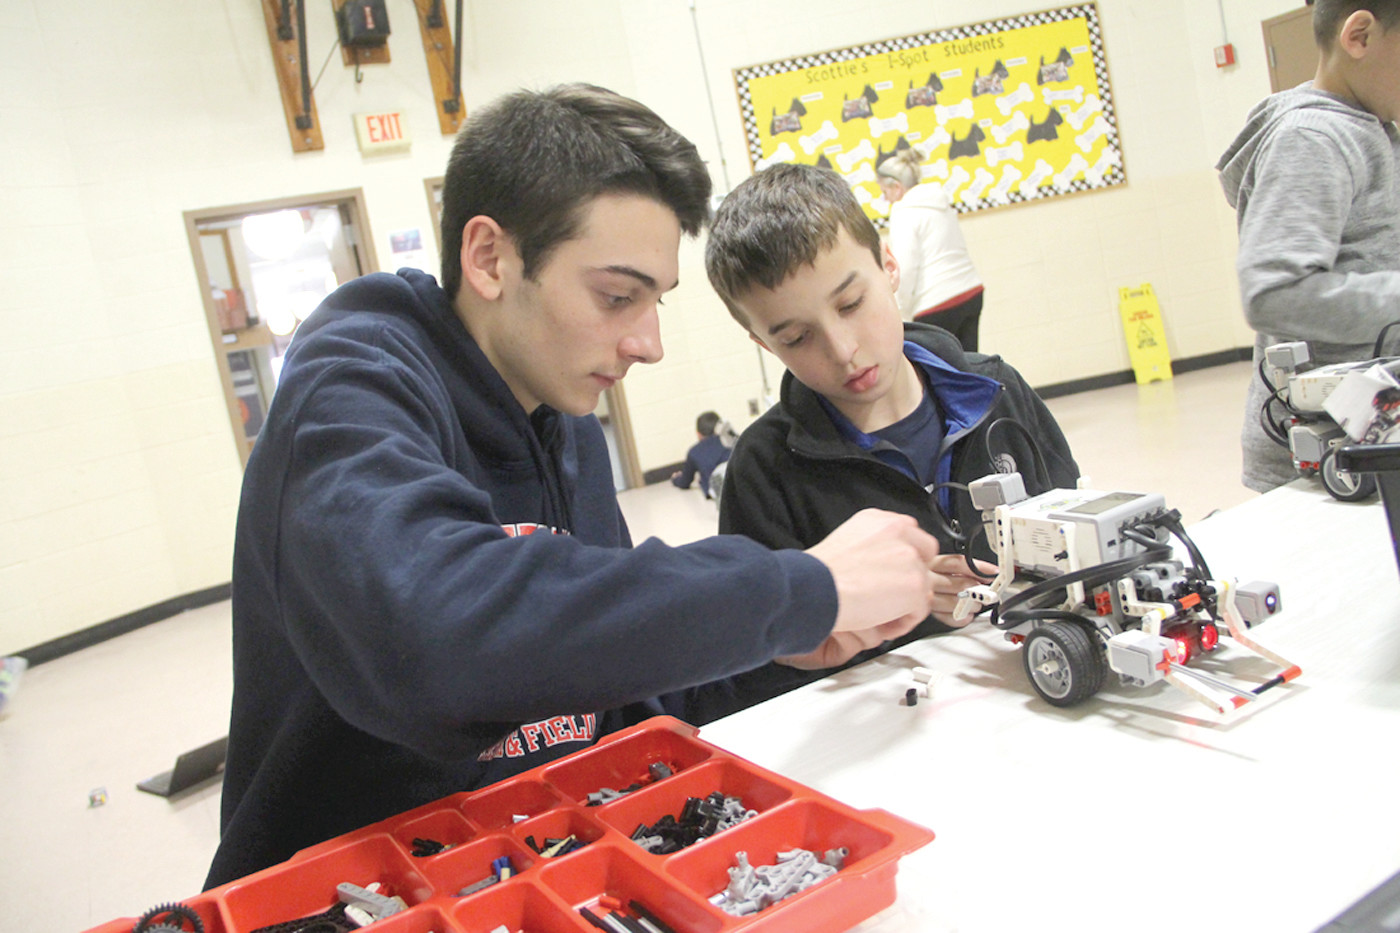 MAKE IT GO FAST: Andrew Mullaney, who thinks he would like to be an architect, was curious how he could program his robot to go faster. He got some assistance from Toll Gate senior Cole Baker. Baker is hopeful of attending UMass and studying engineering.